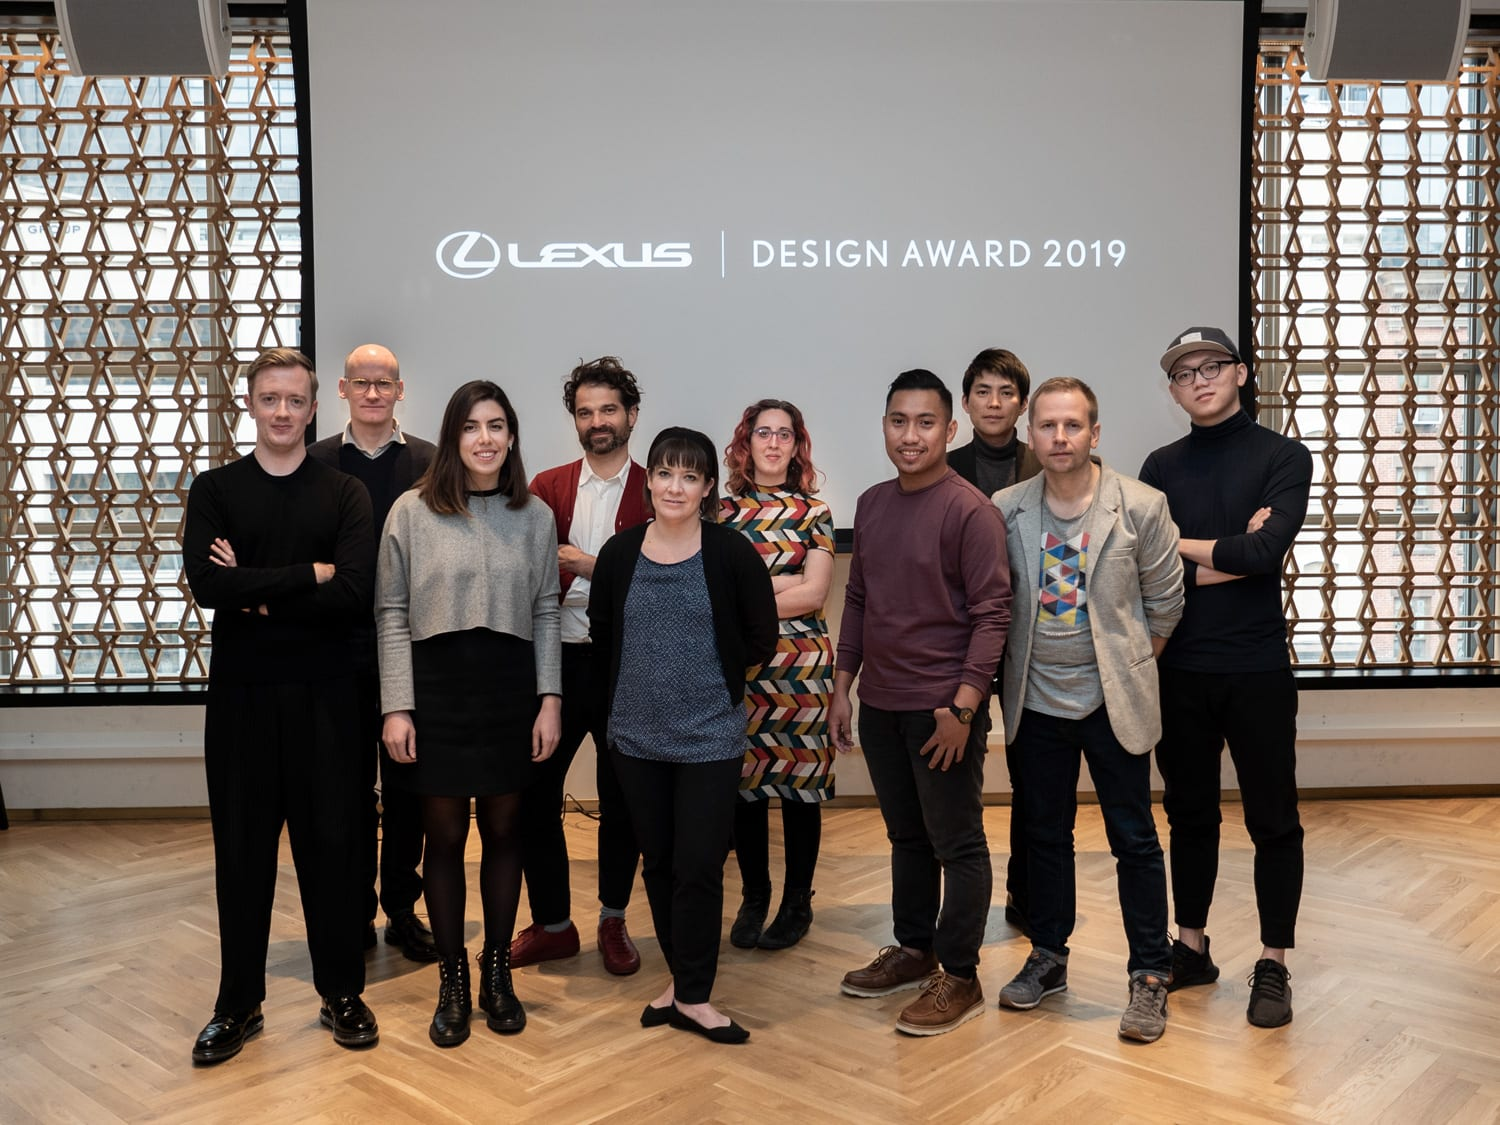 Lexus Design Award 2019 | Yellowtrace